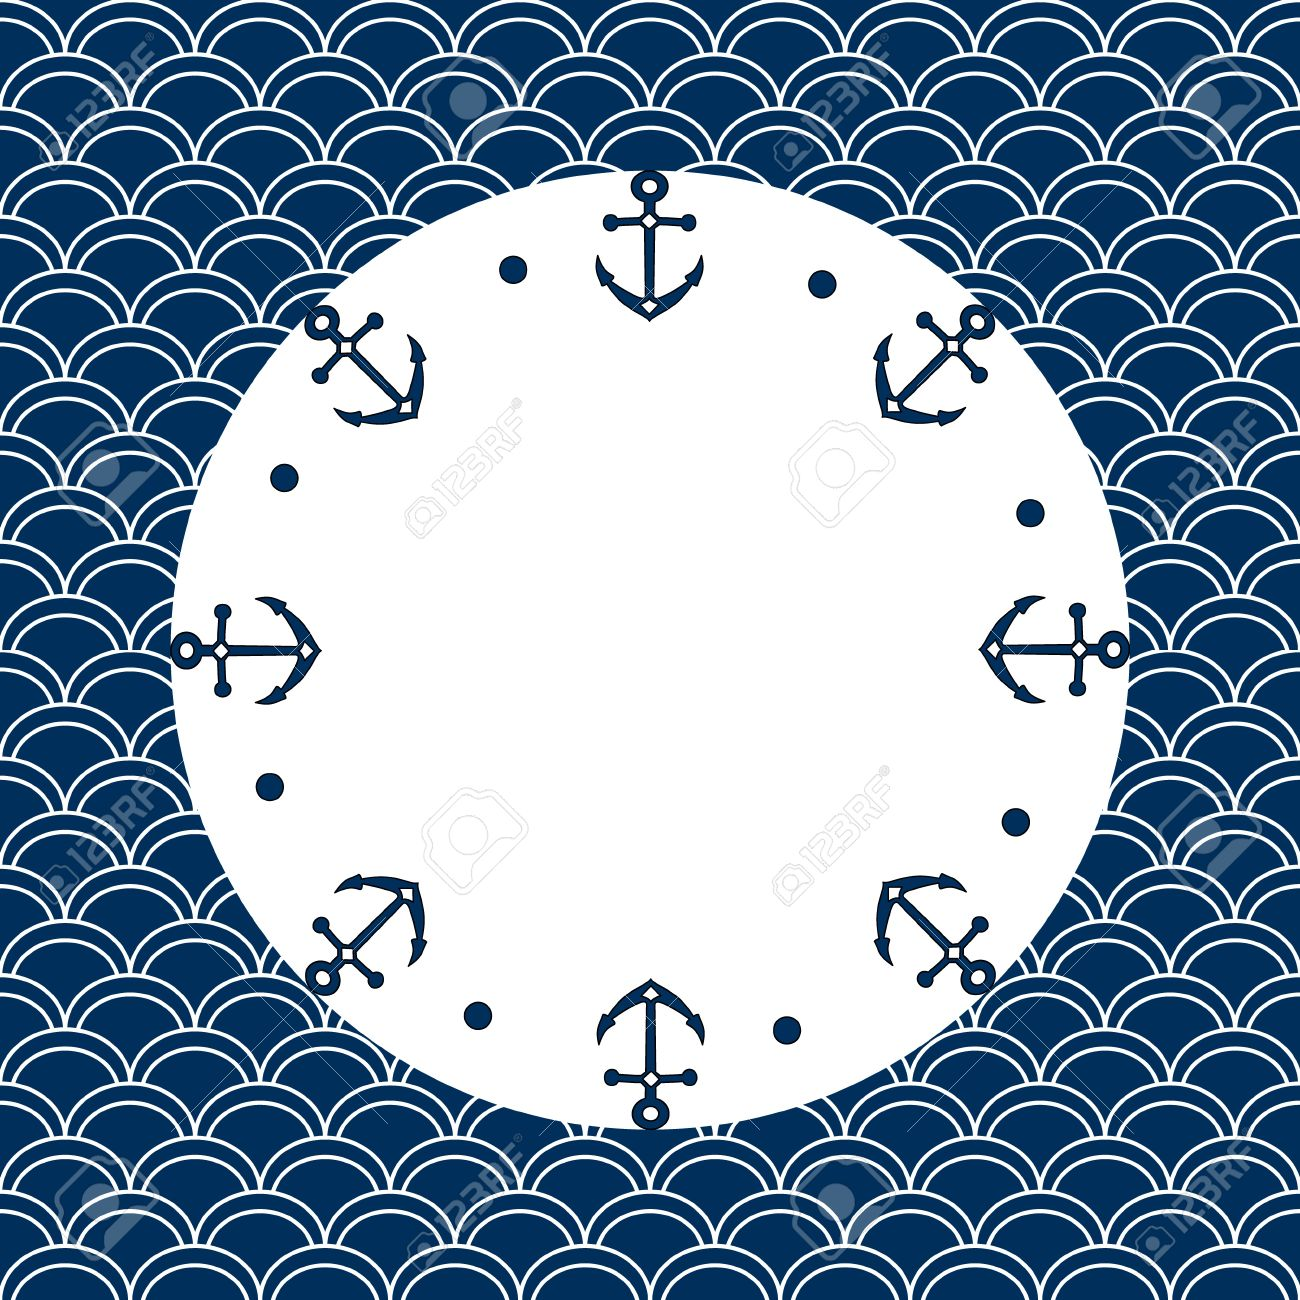 Round Navy Blue And White Frame With Anchors Dots On A Scalloped Background